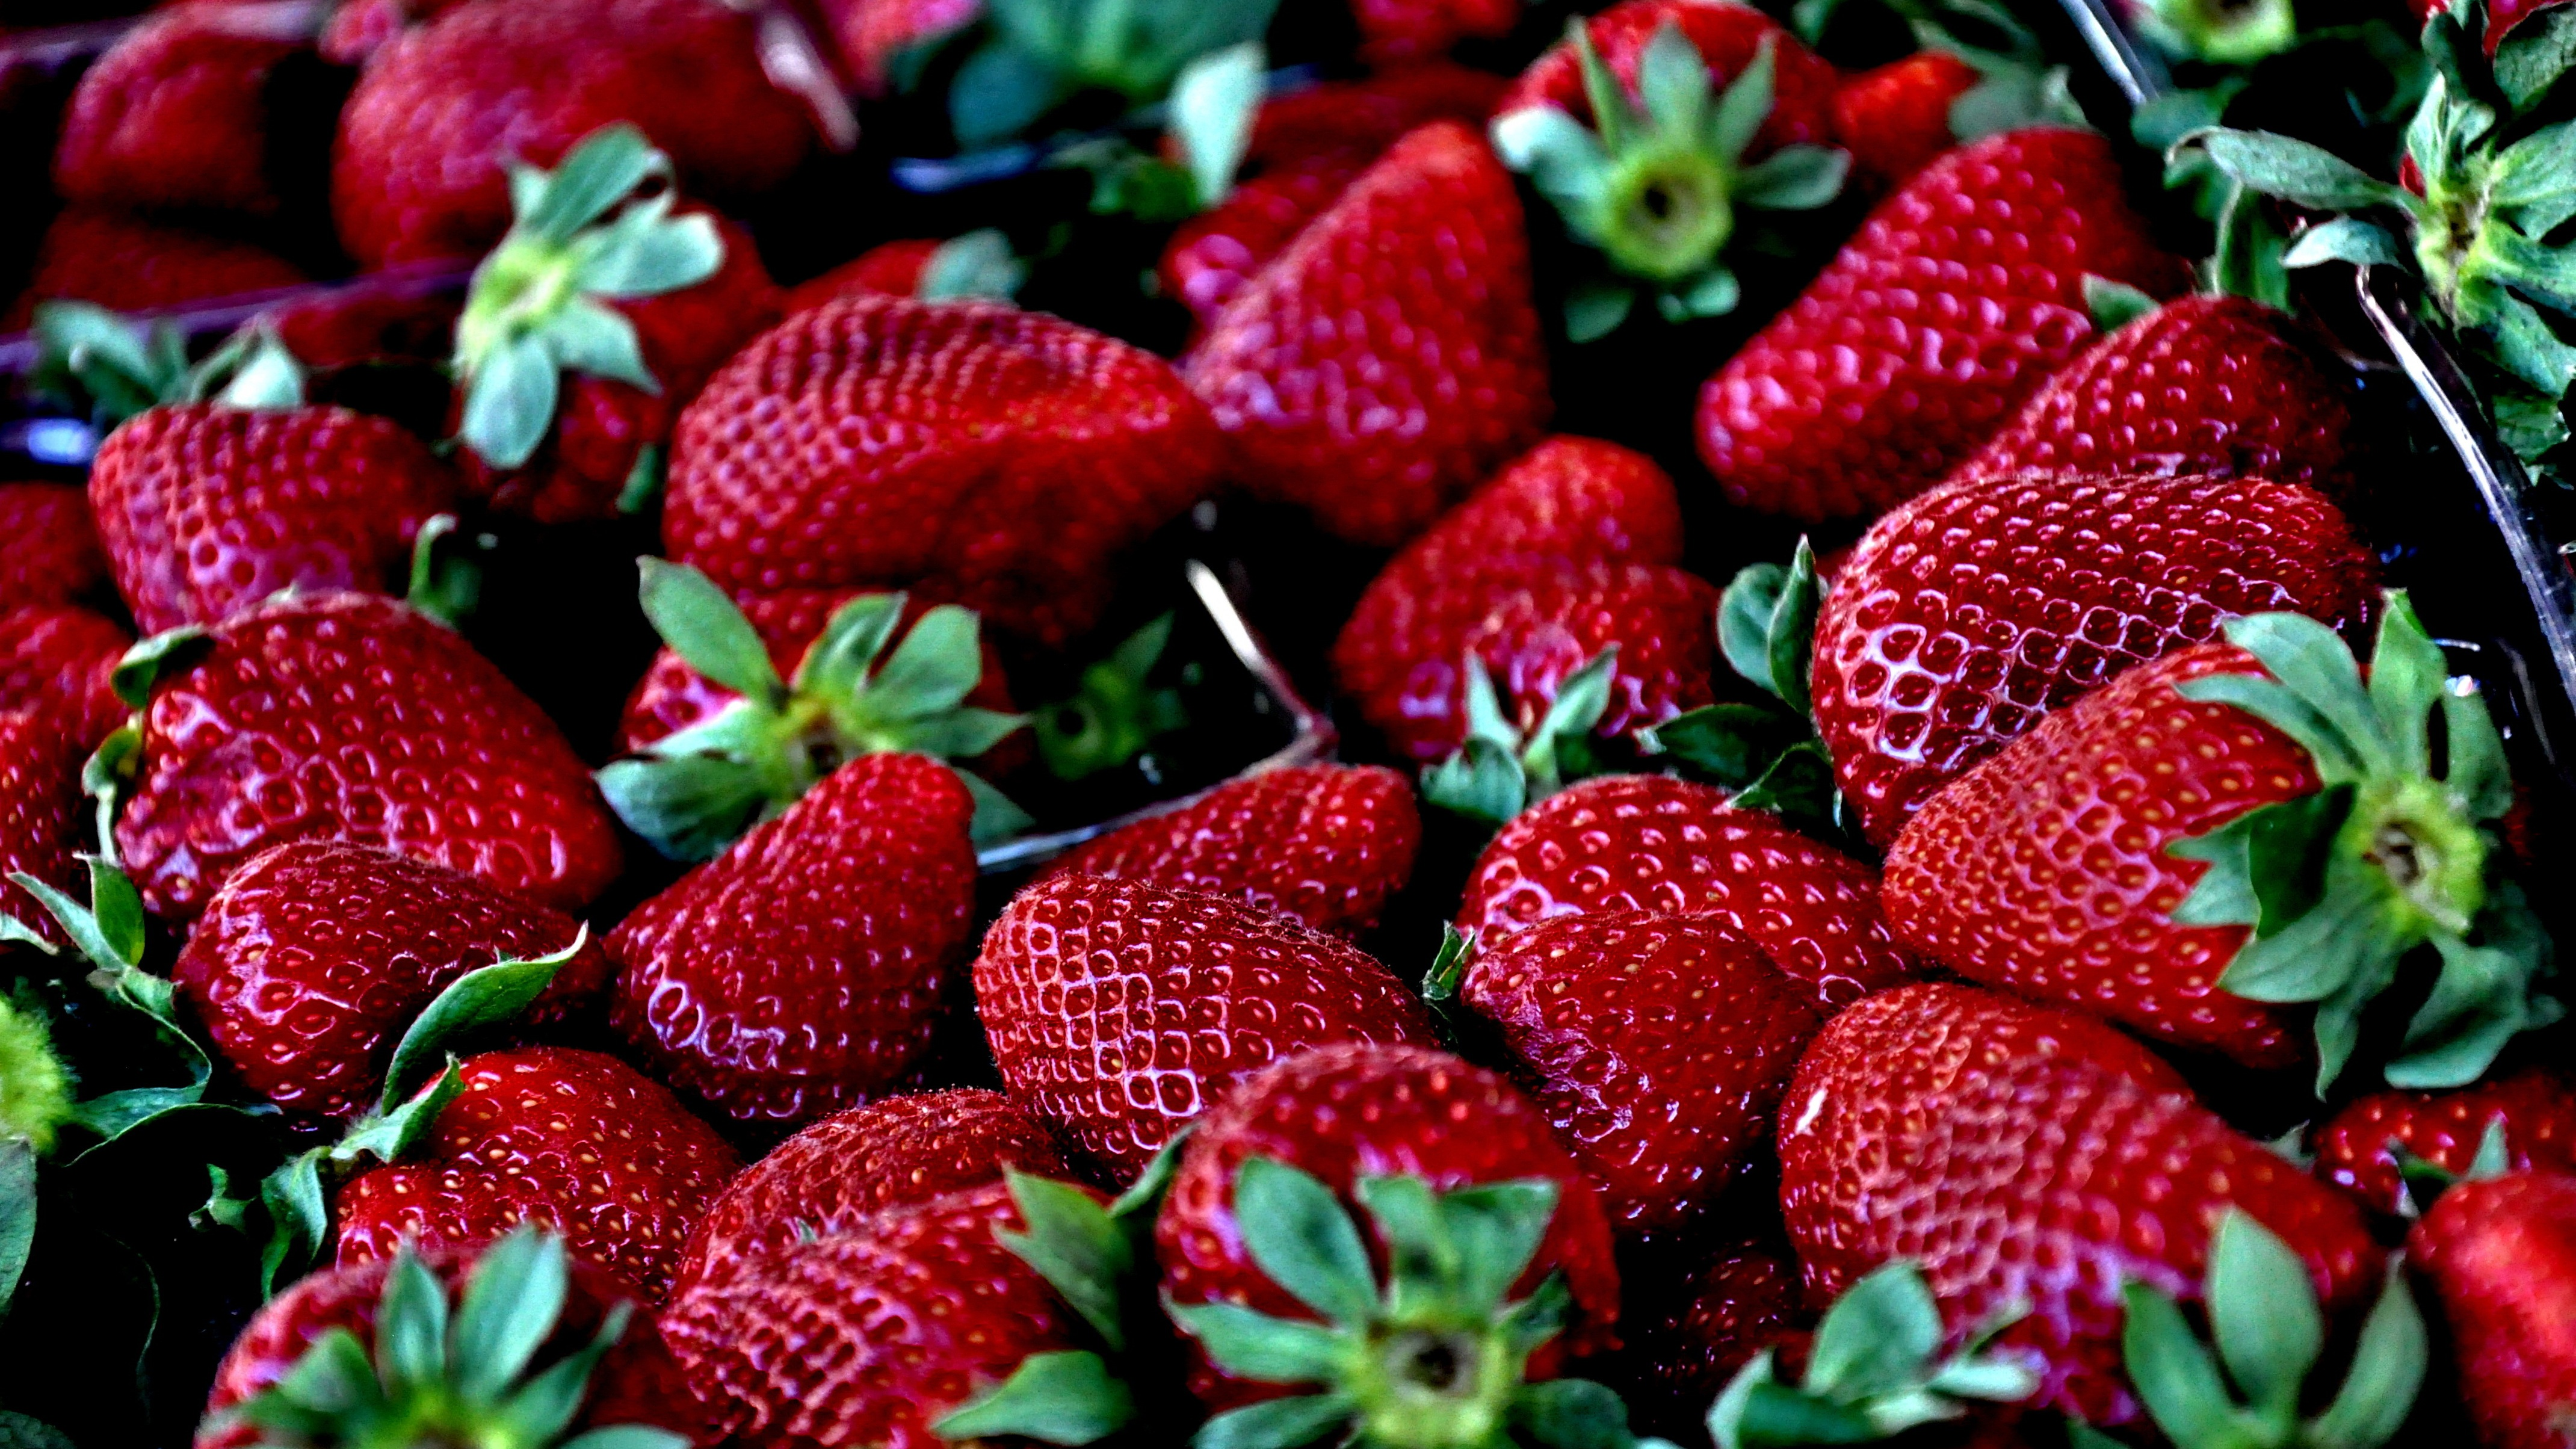 Popular Berries images for mobile phone